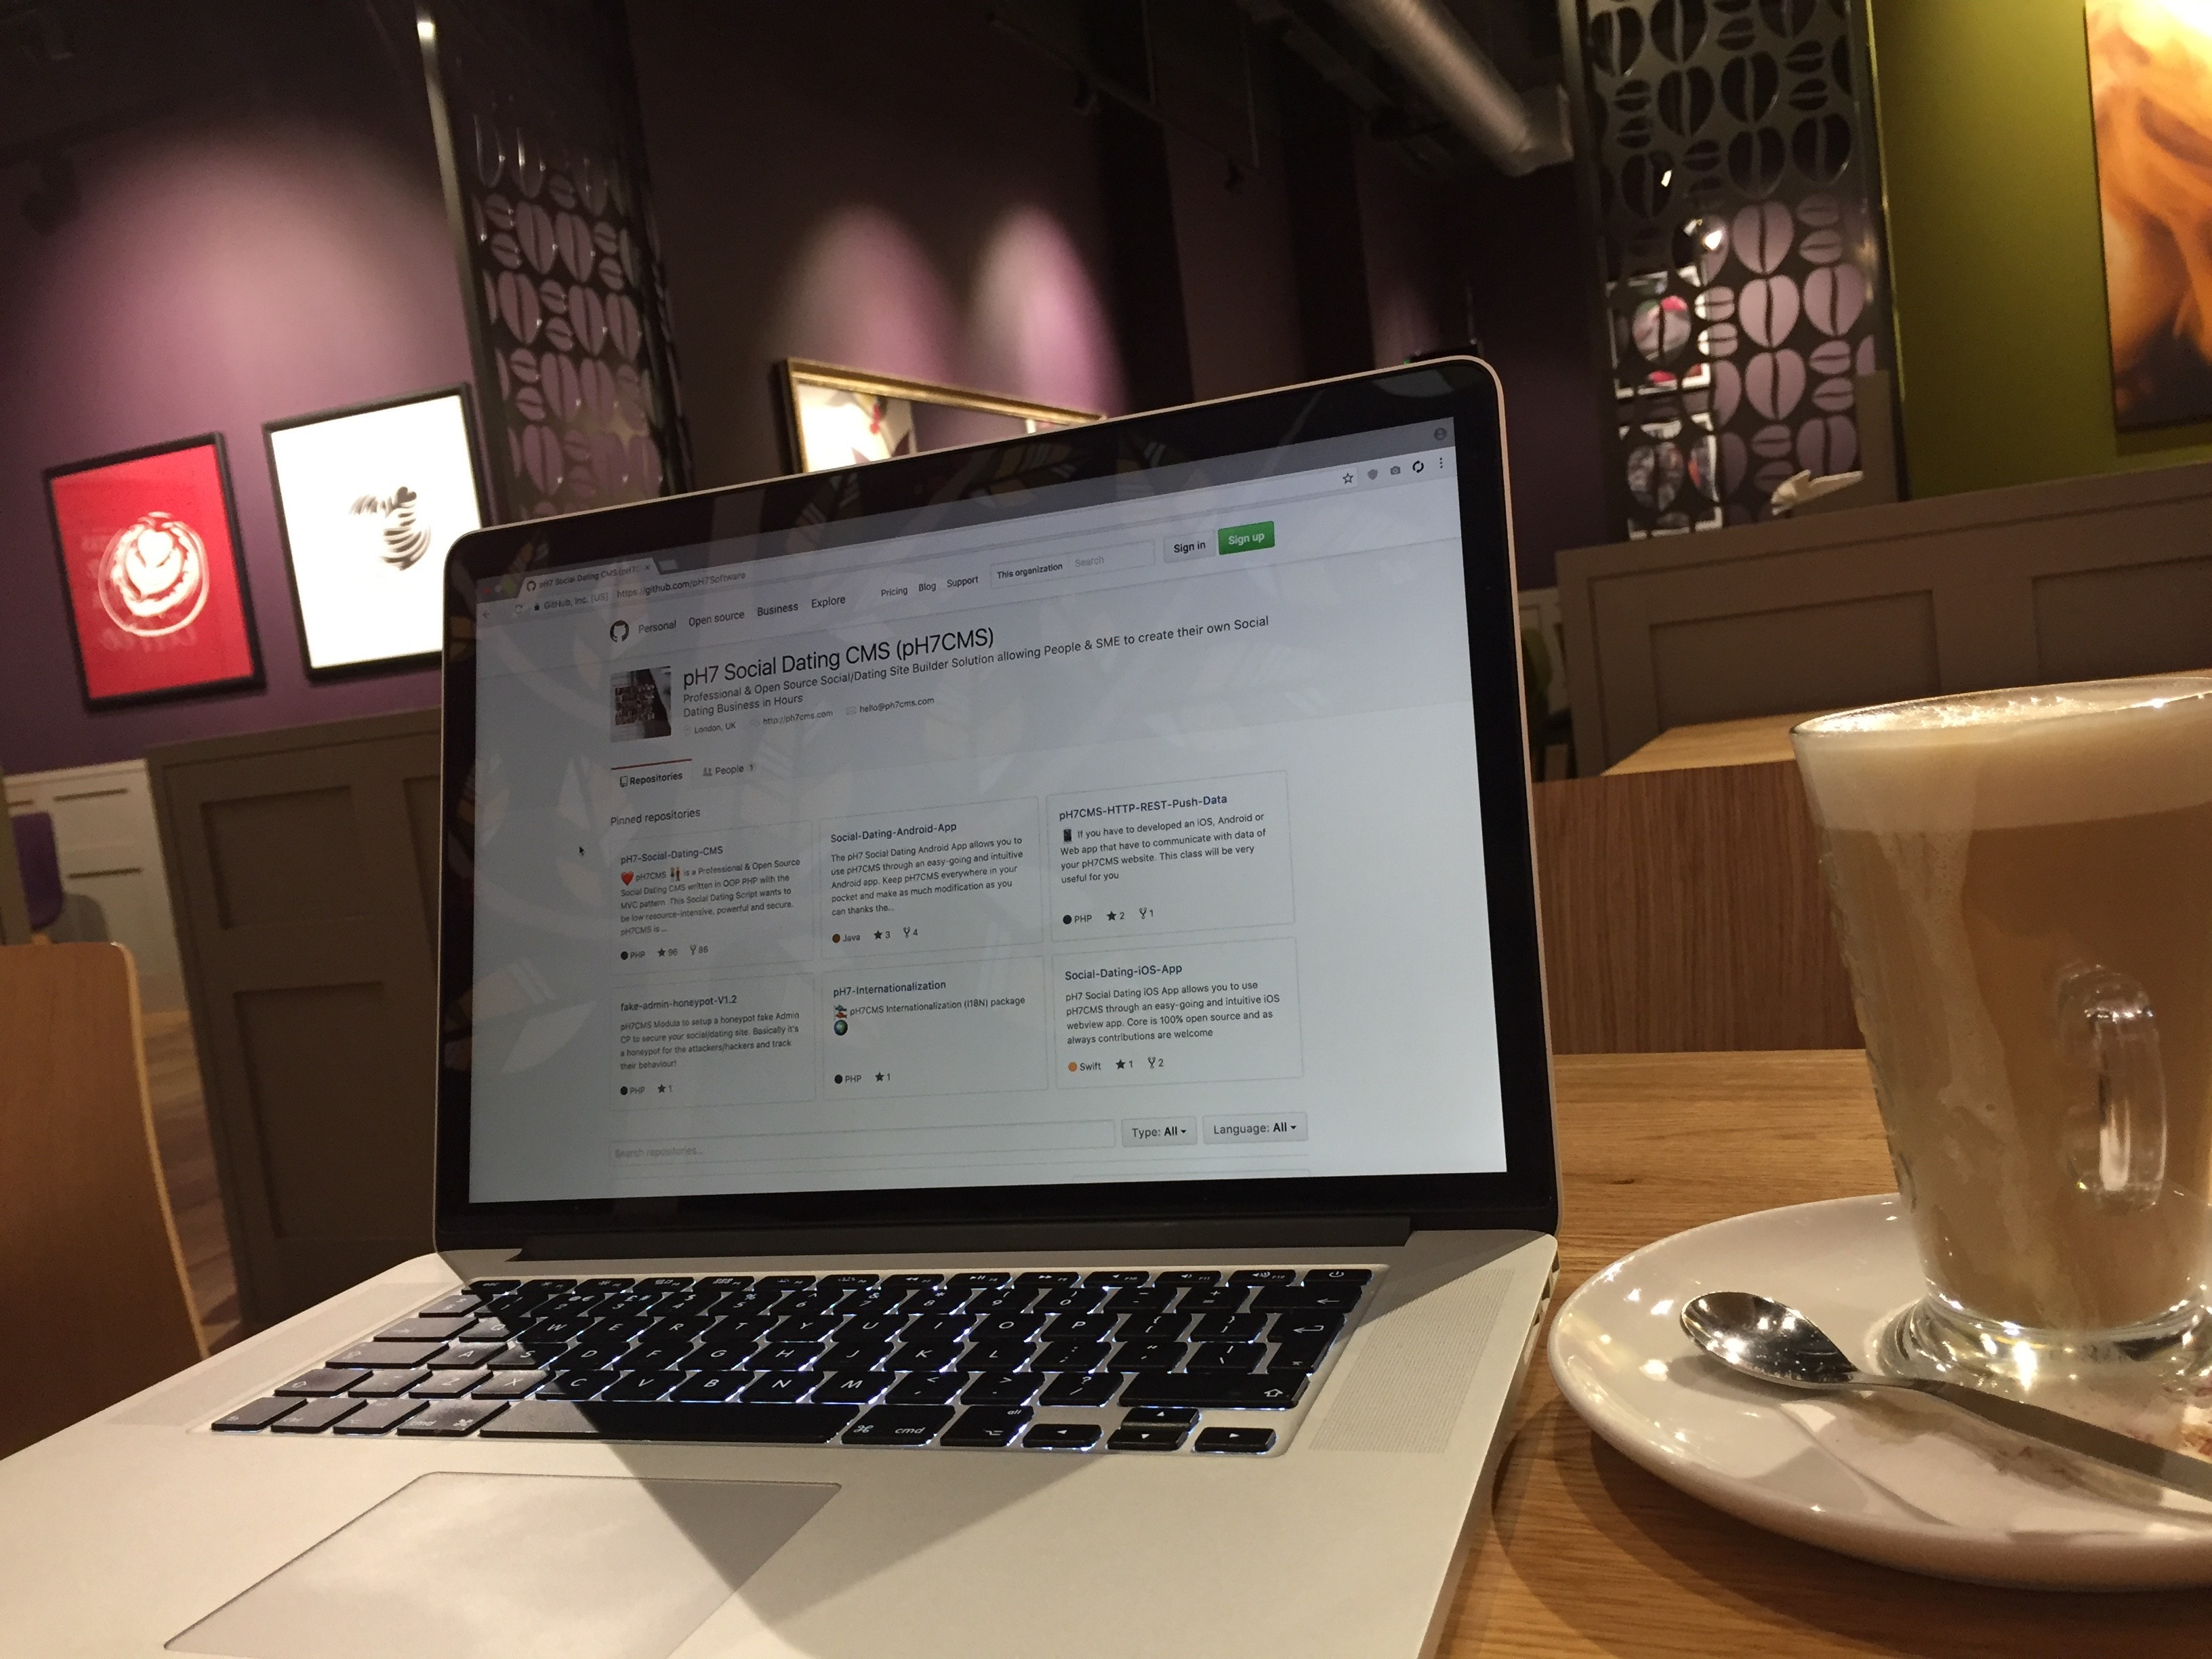 pH7Software GitHub. Me, at a Costa coffee shop on Feb 4th, 2017.